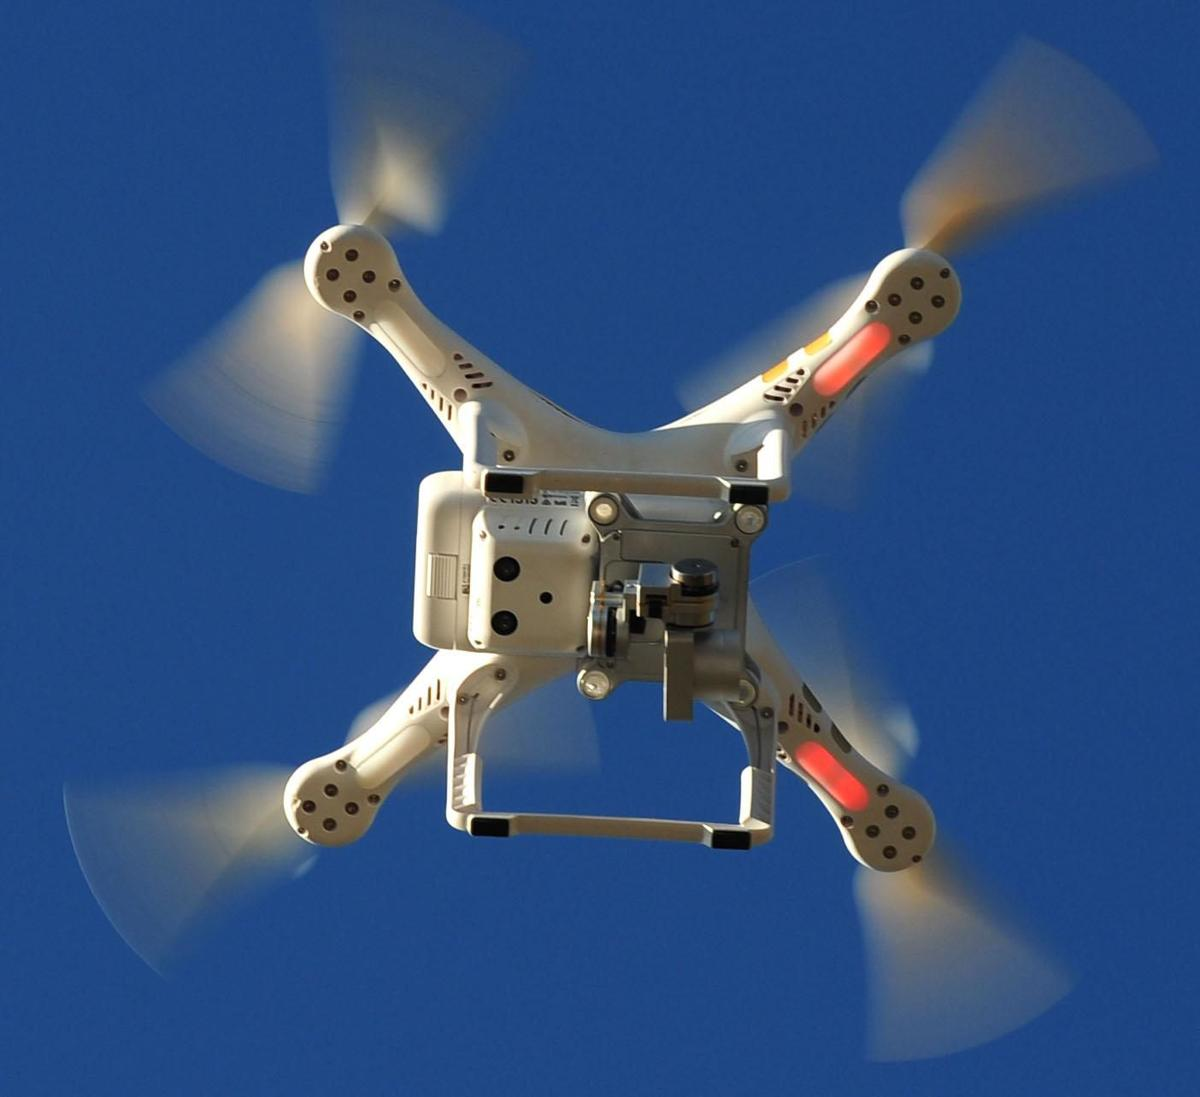 Did Santa leave a drone under your tree?